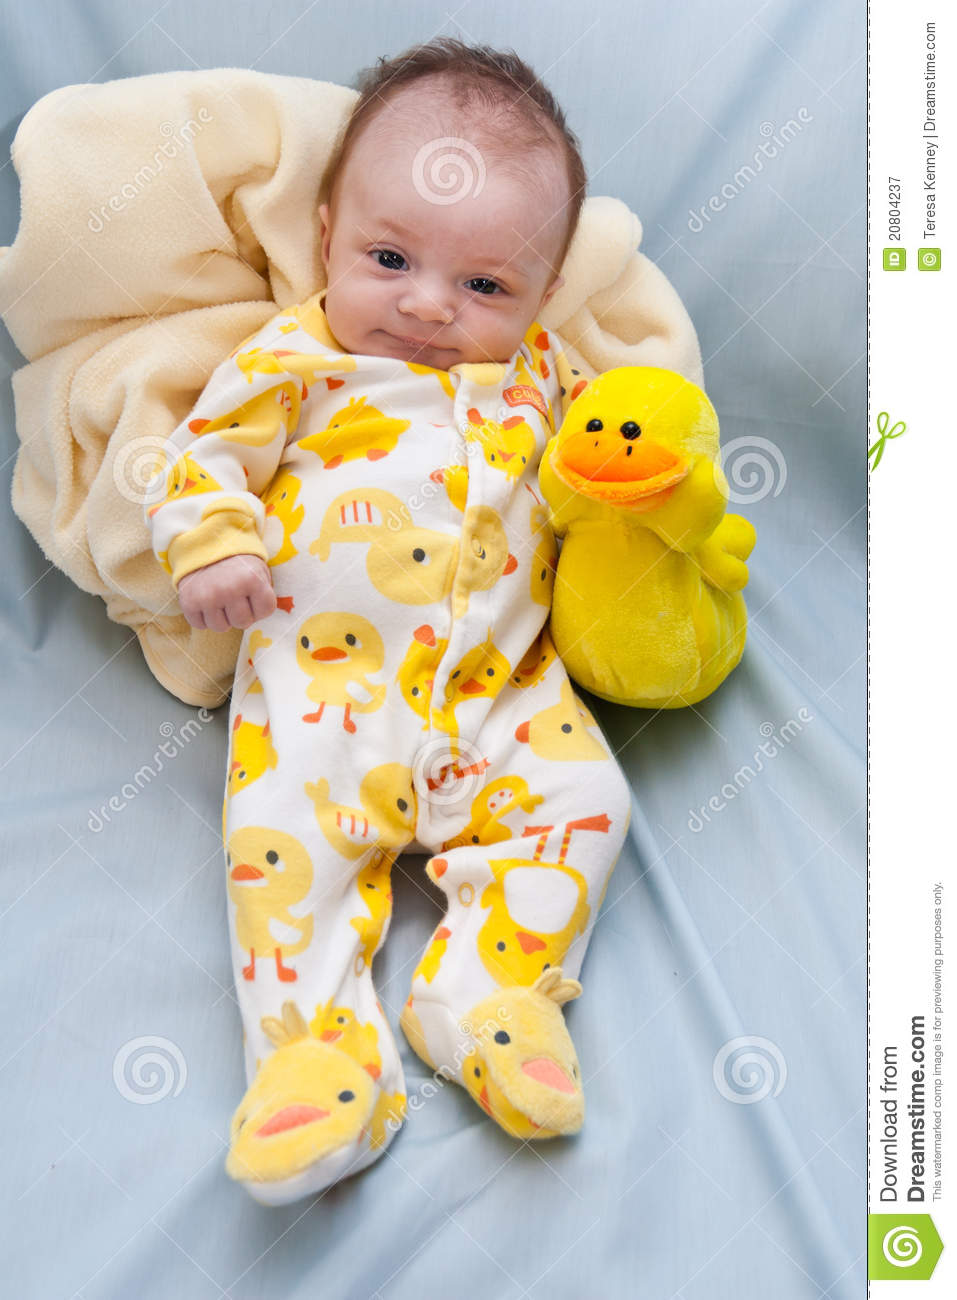 ... ducks and holding a stuffed duck toy. Background is light blue fabric